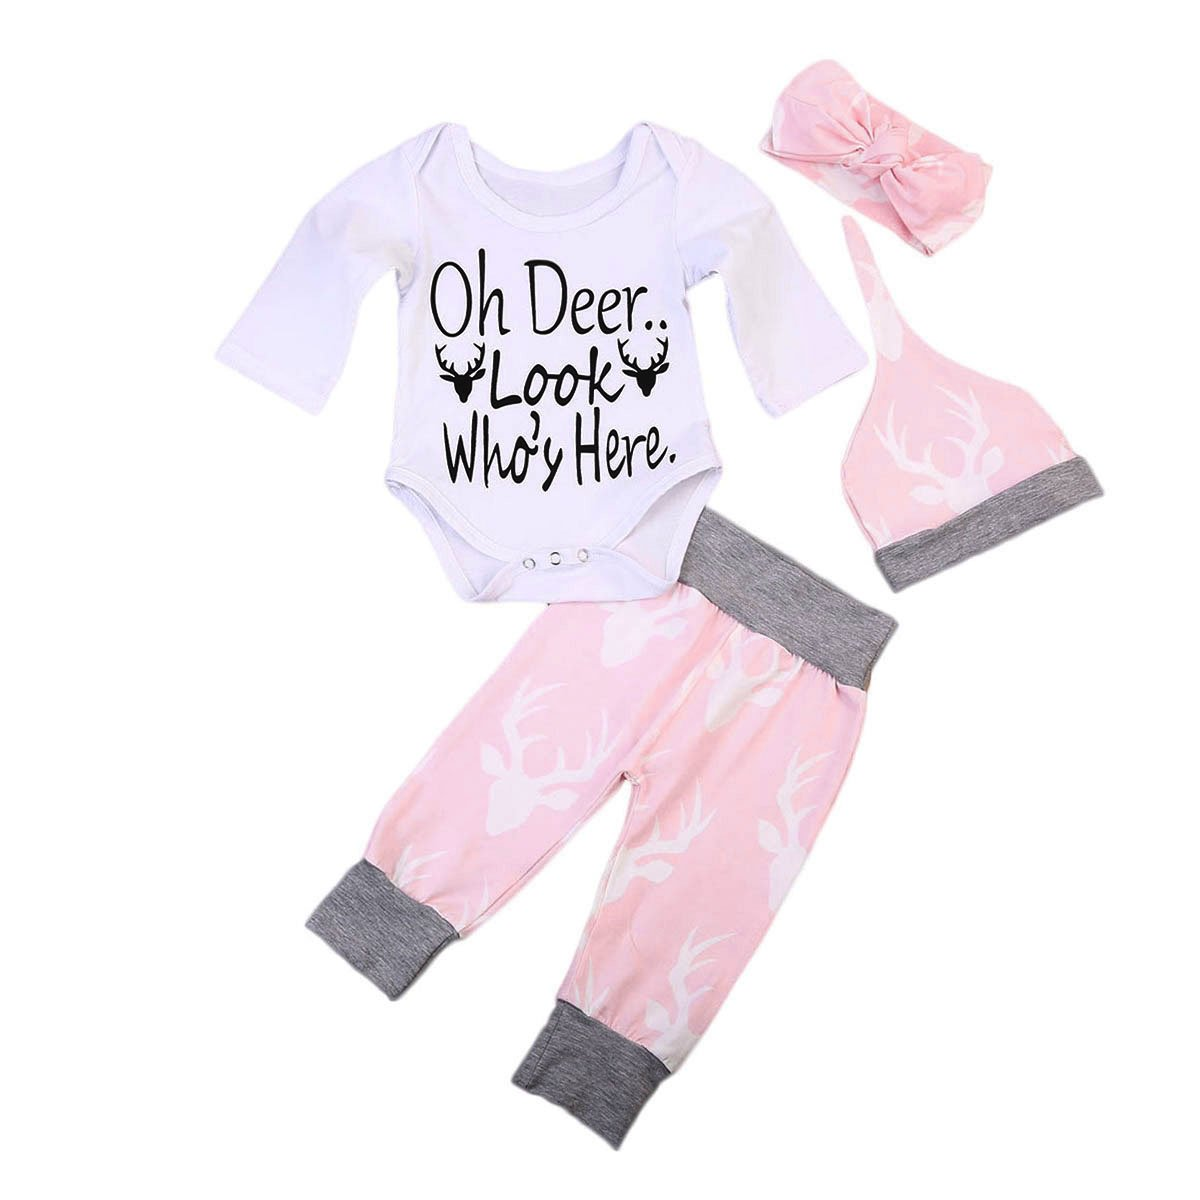 Pie Baby Infant Girls Cute Bodysuits with Leggings and Hat 3pcs 4pcs Outfit  Clothes  Clothing ea0ce81190